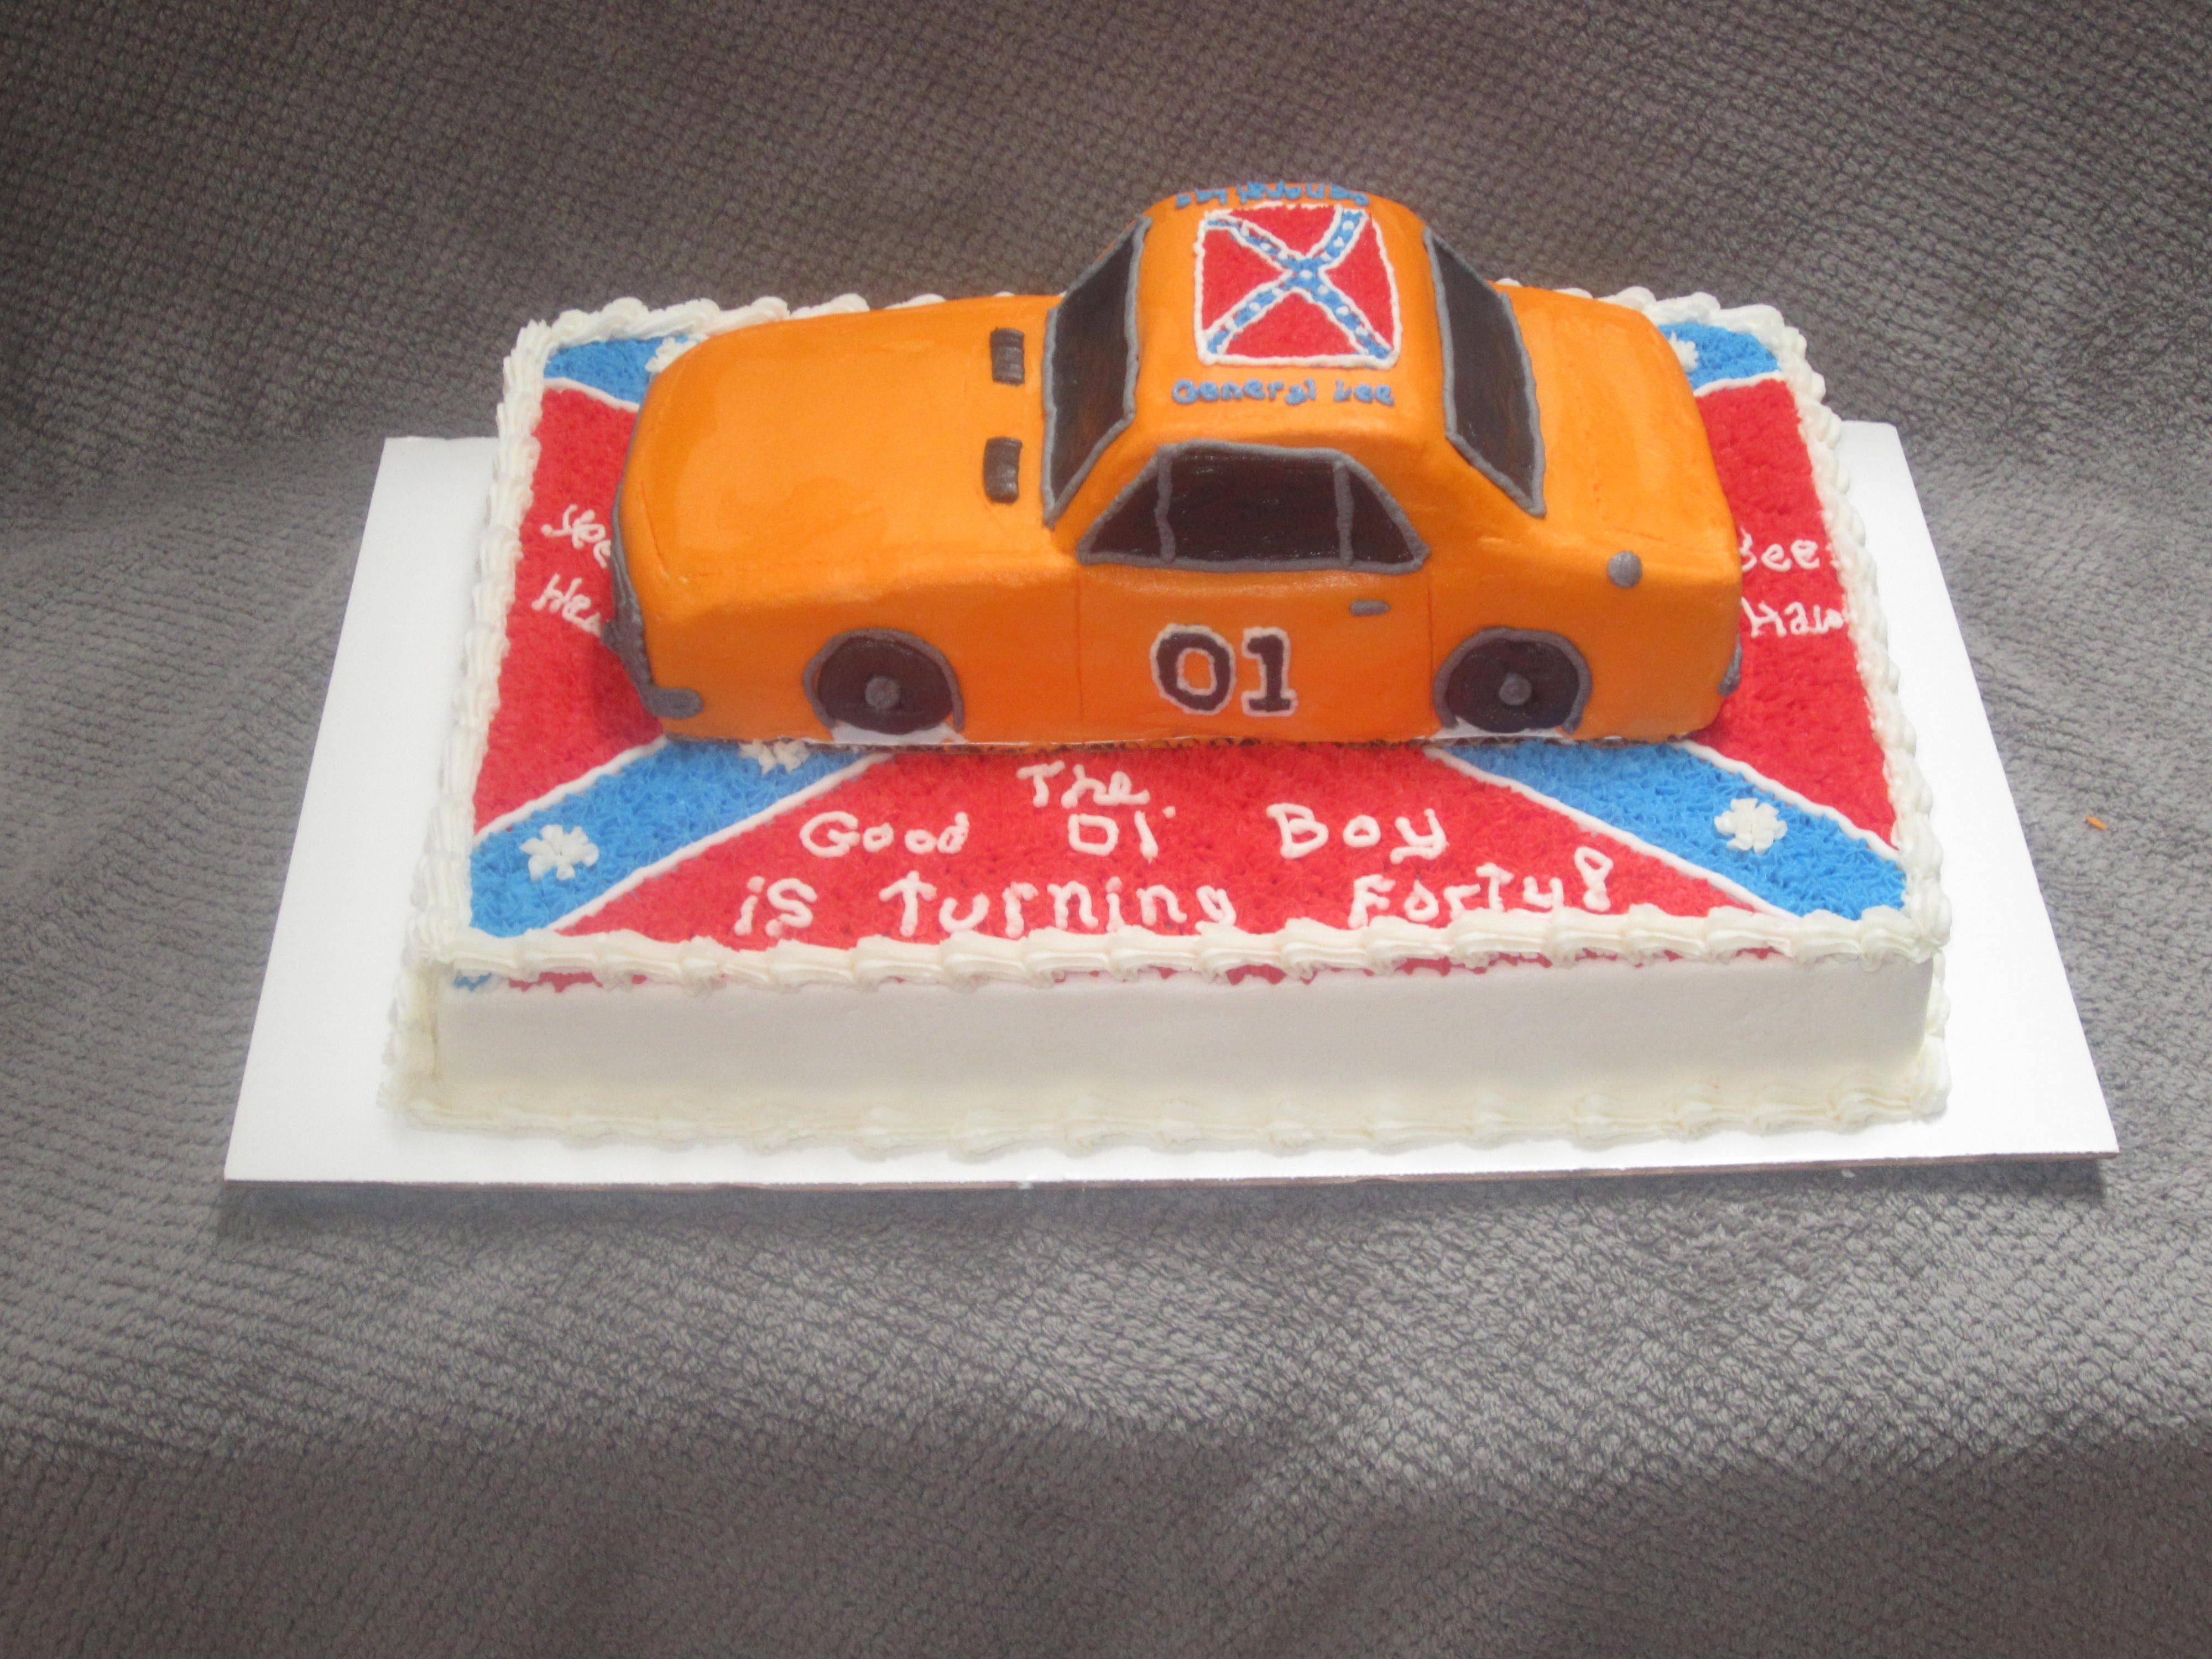 Dukes Of Hazzard Themed 40th Birthday Cake With 3 D General Lee On Top